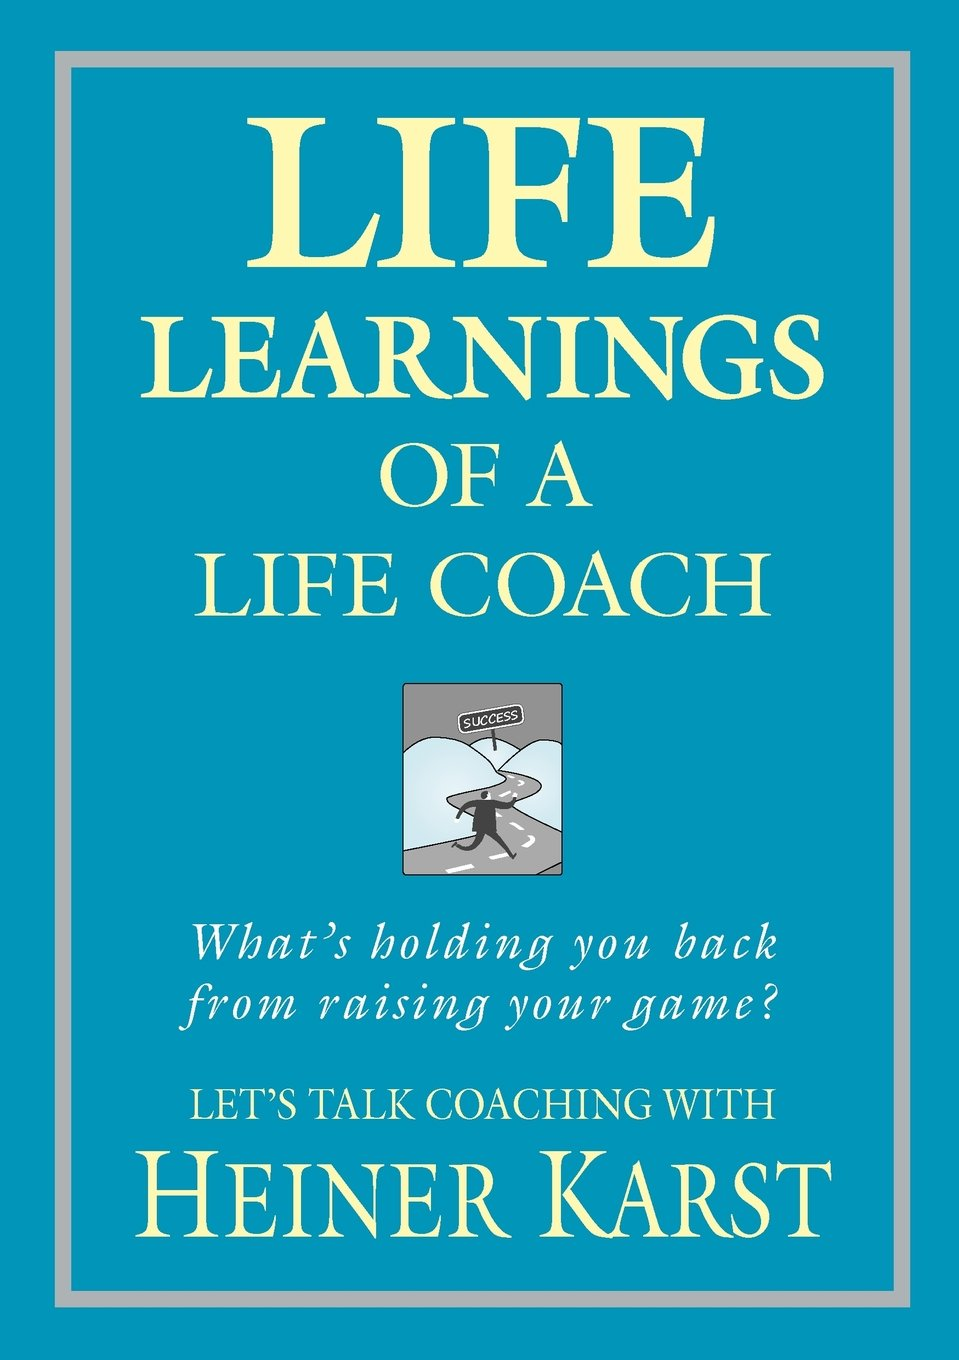 Whats The Difference Between Executive And Life Coaching >> Life Learnings Of A Life Coach Heiner Karst 9780987368218 Amazon